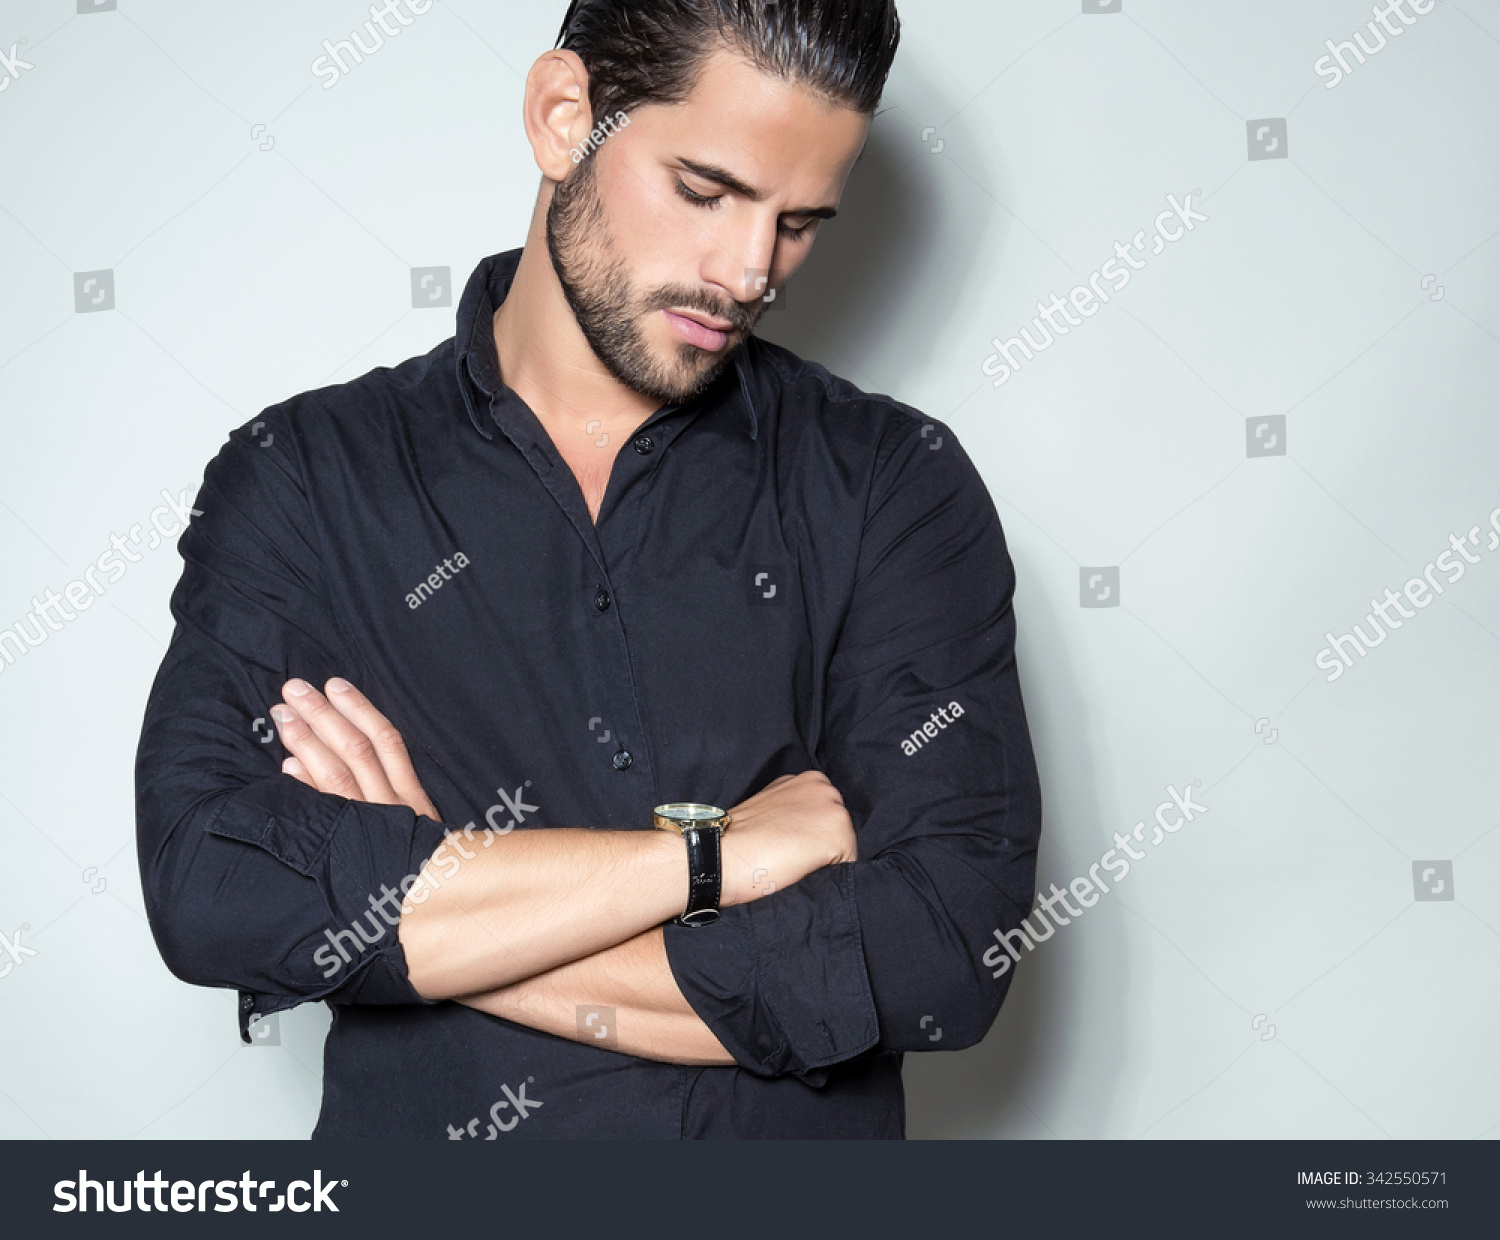 Handsome Young Man Black Dress Shirt Stock Photo 342550571 ...